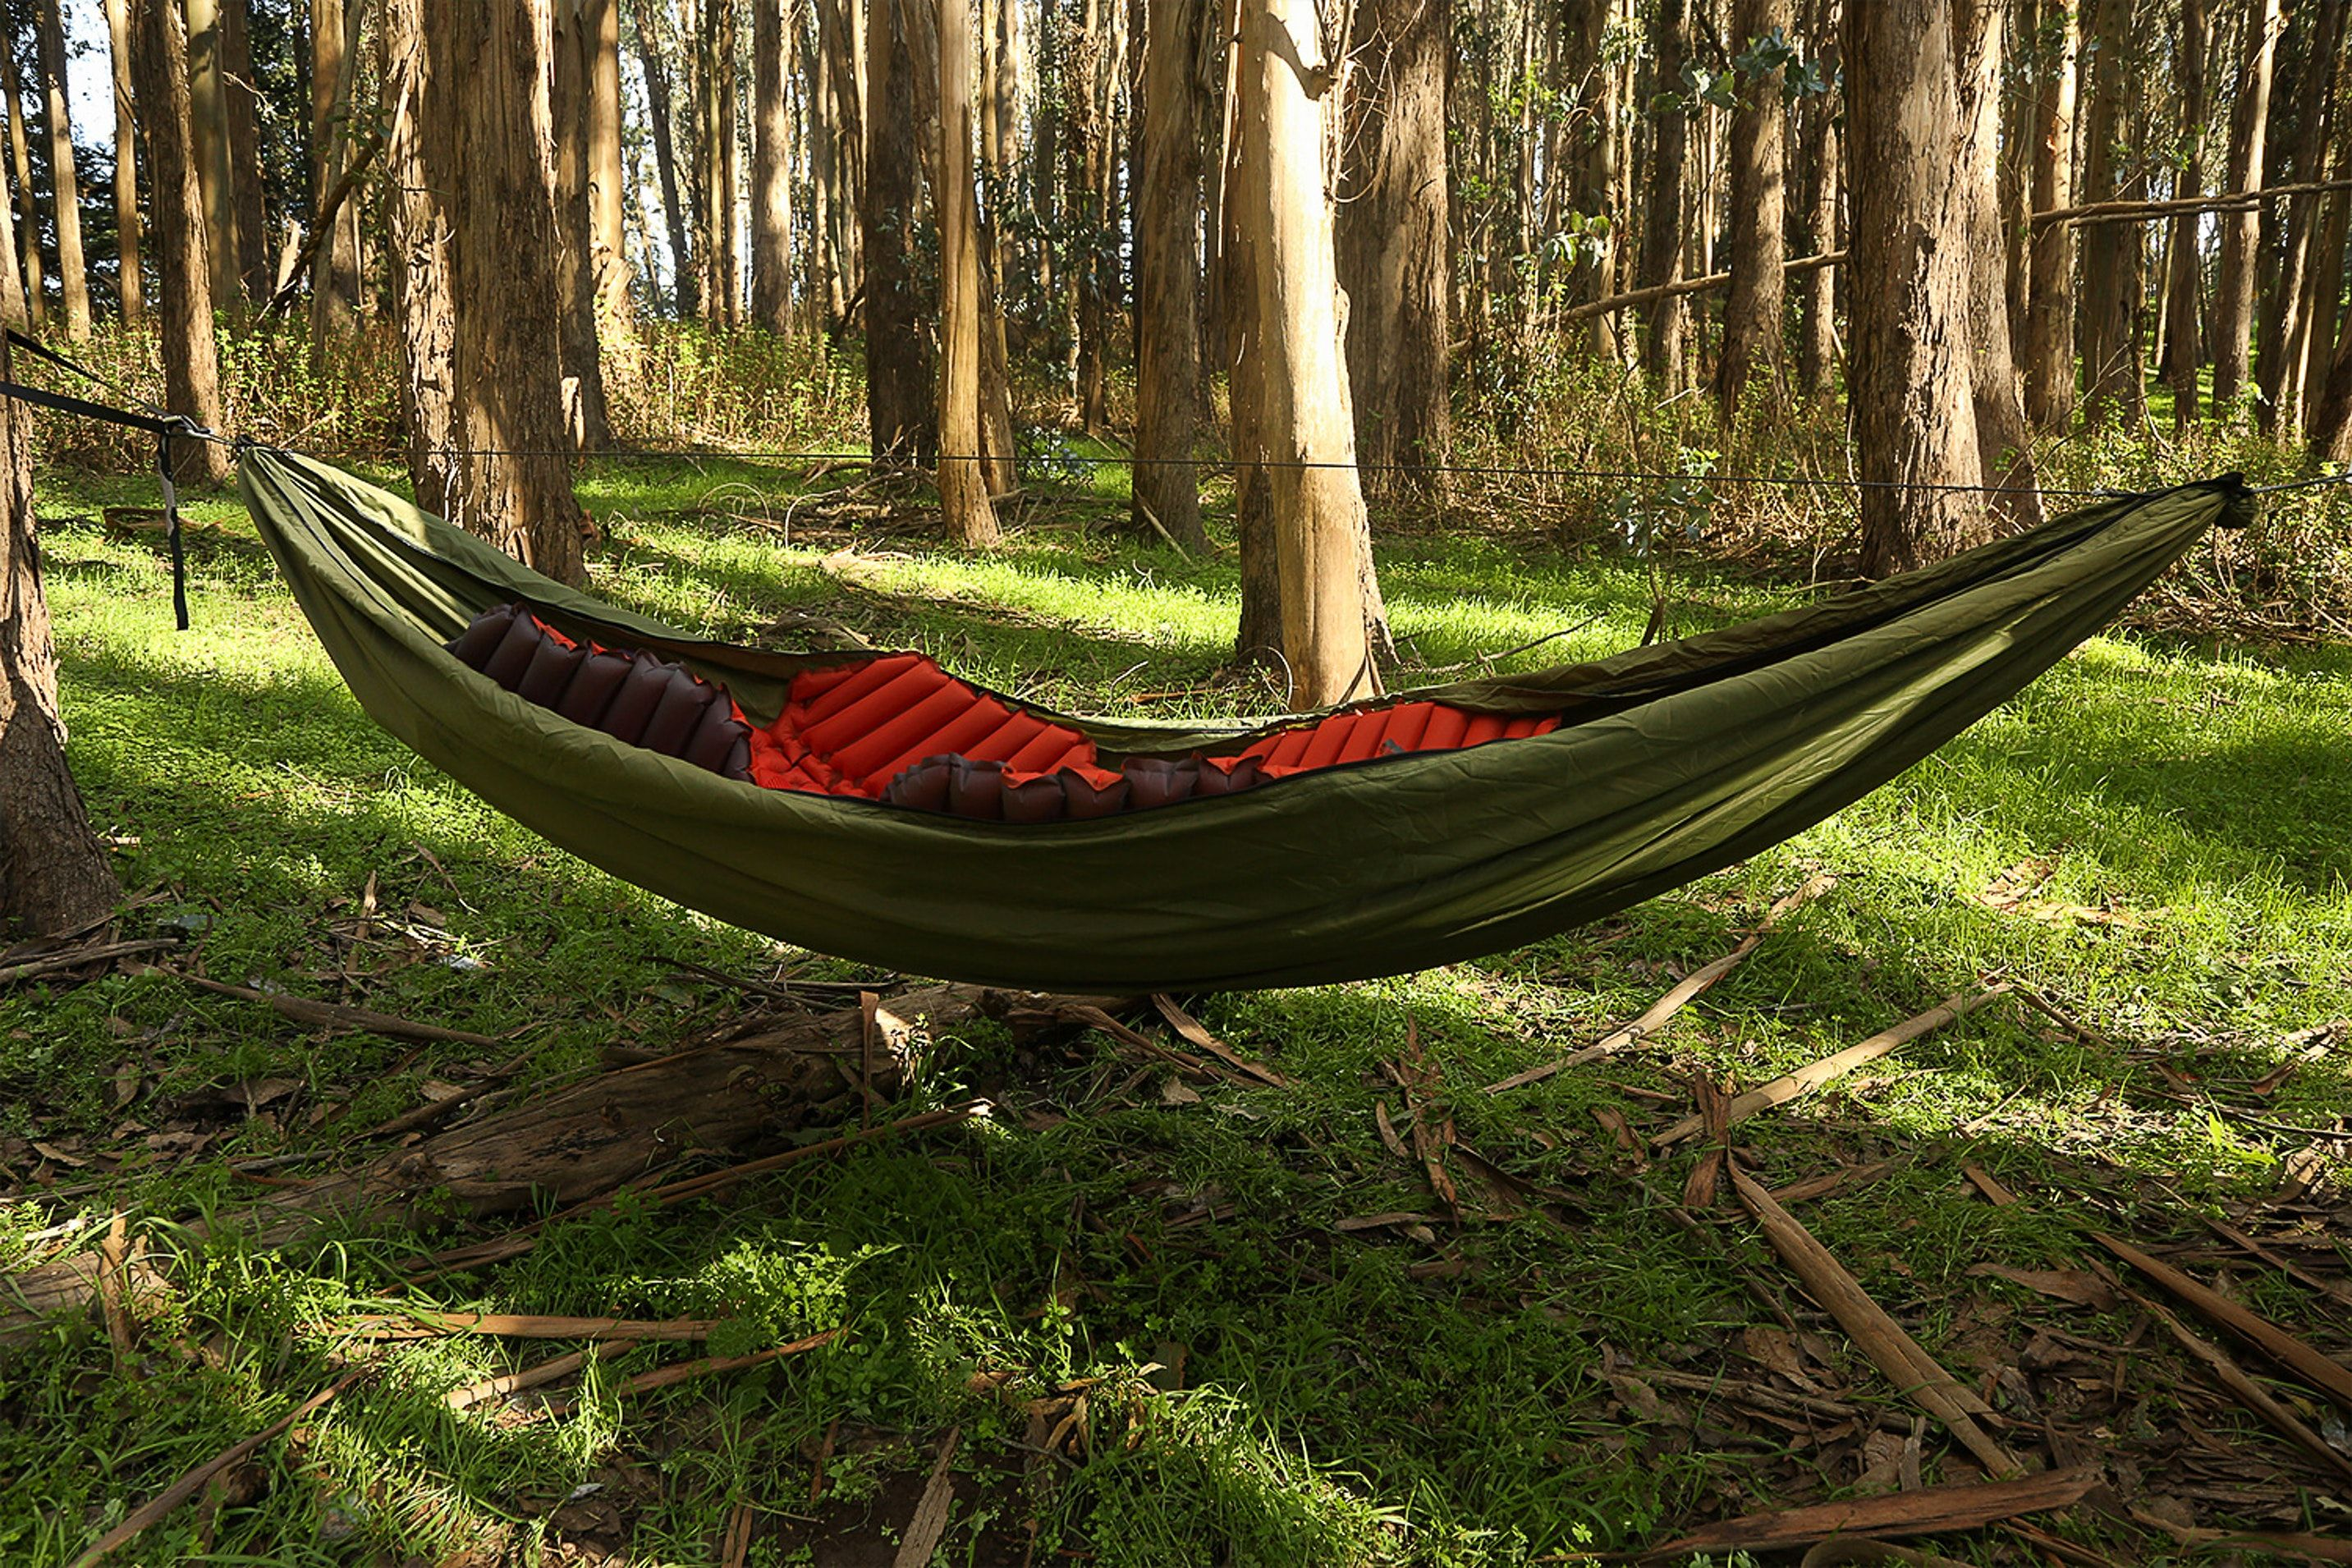 caribbean holiday relax image between sleeping sleep woman guadeloupe hammock beach photo palm photos young trees in on stock tree